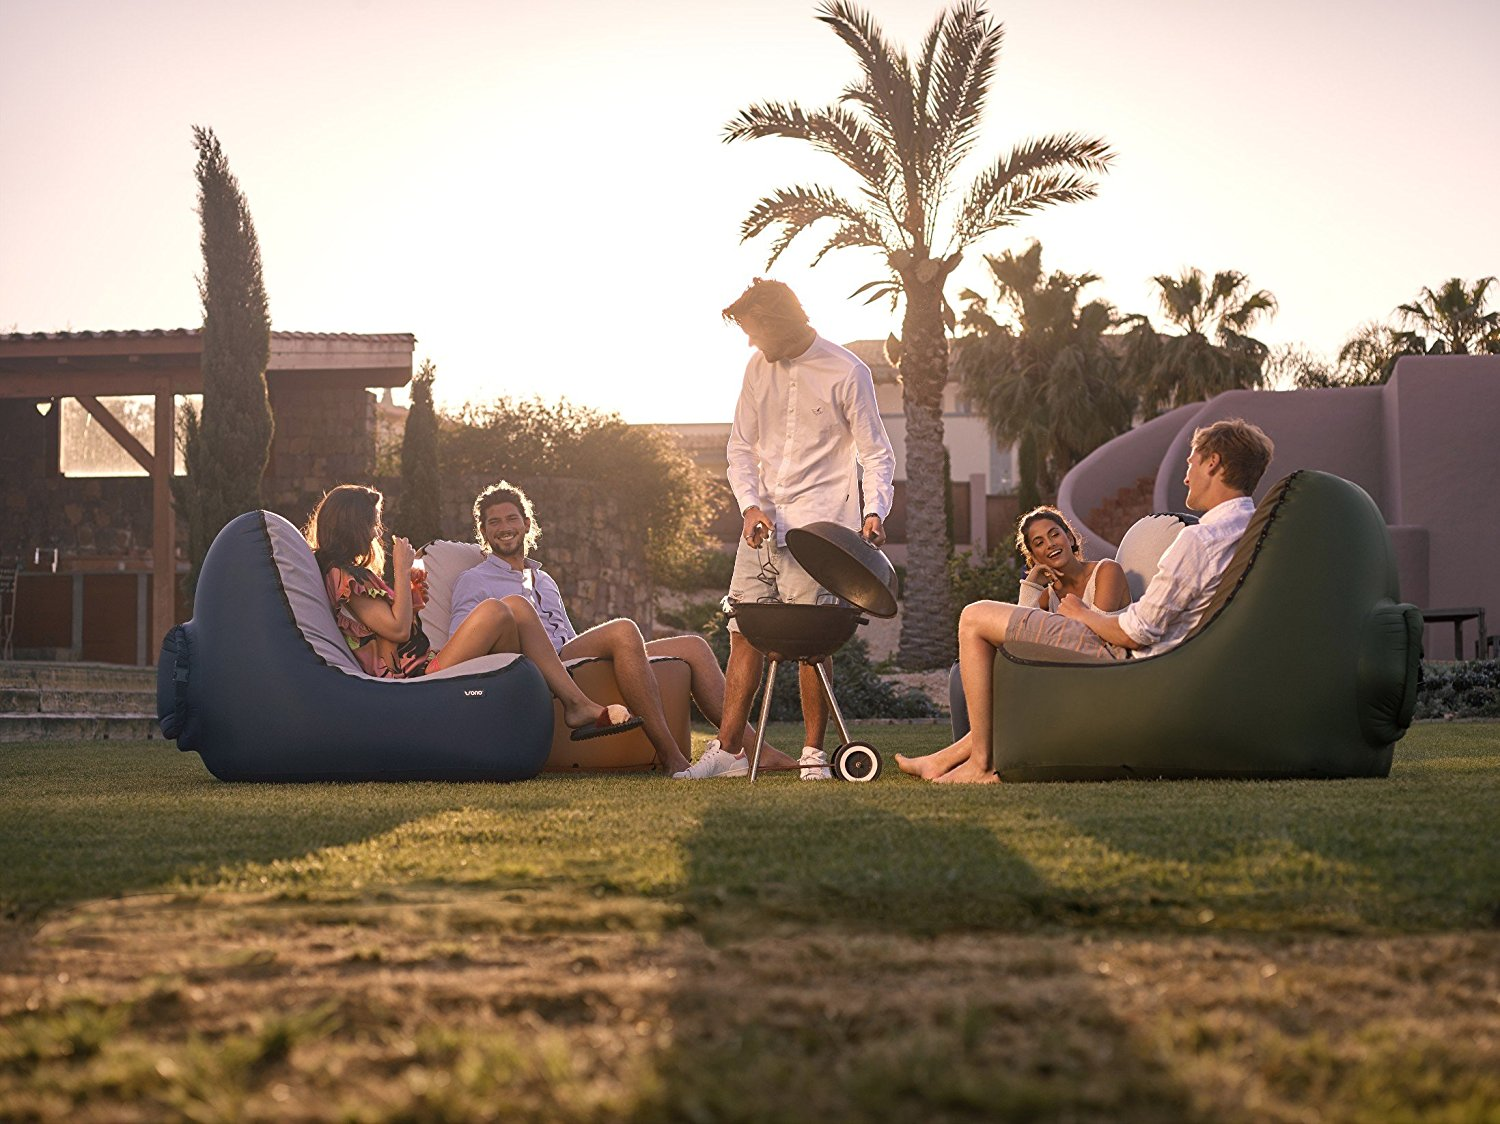 Trono Inflatable Chair $ 79